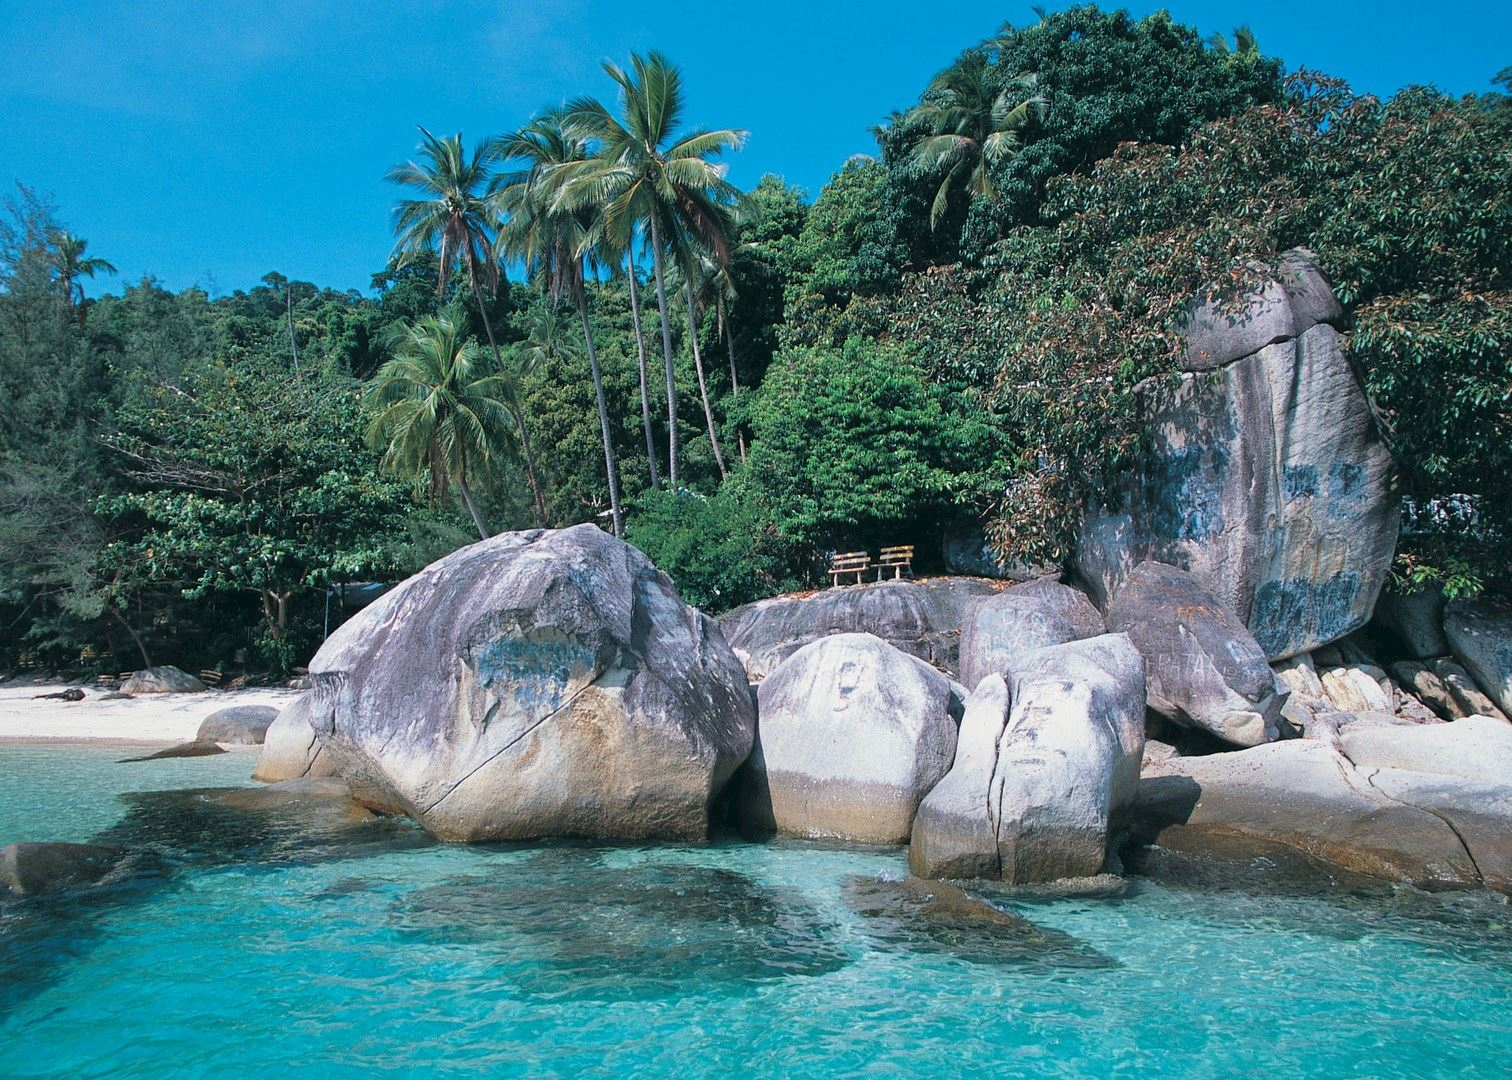 Visit Perhentian Islands on a trip to Malaysia | Audley Travel